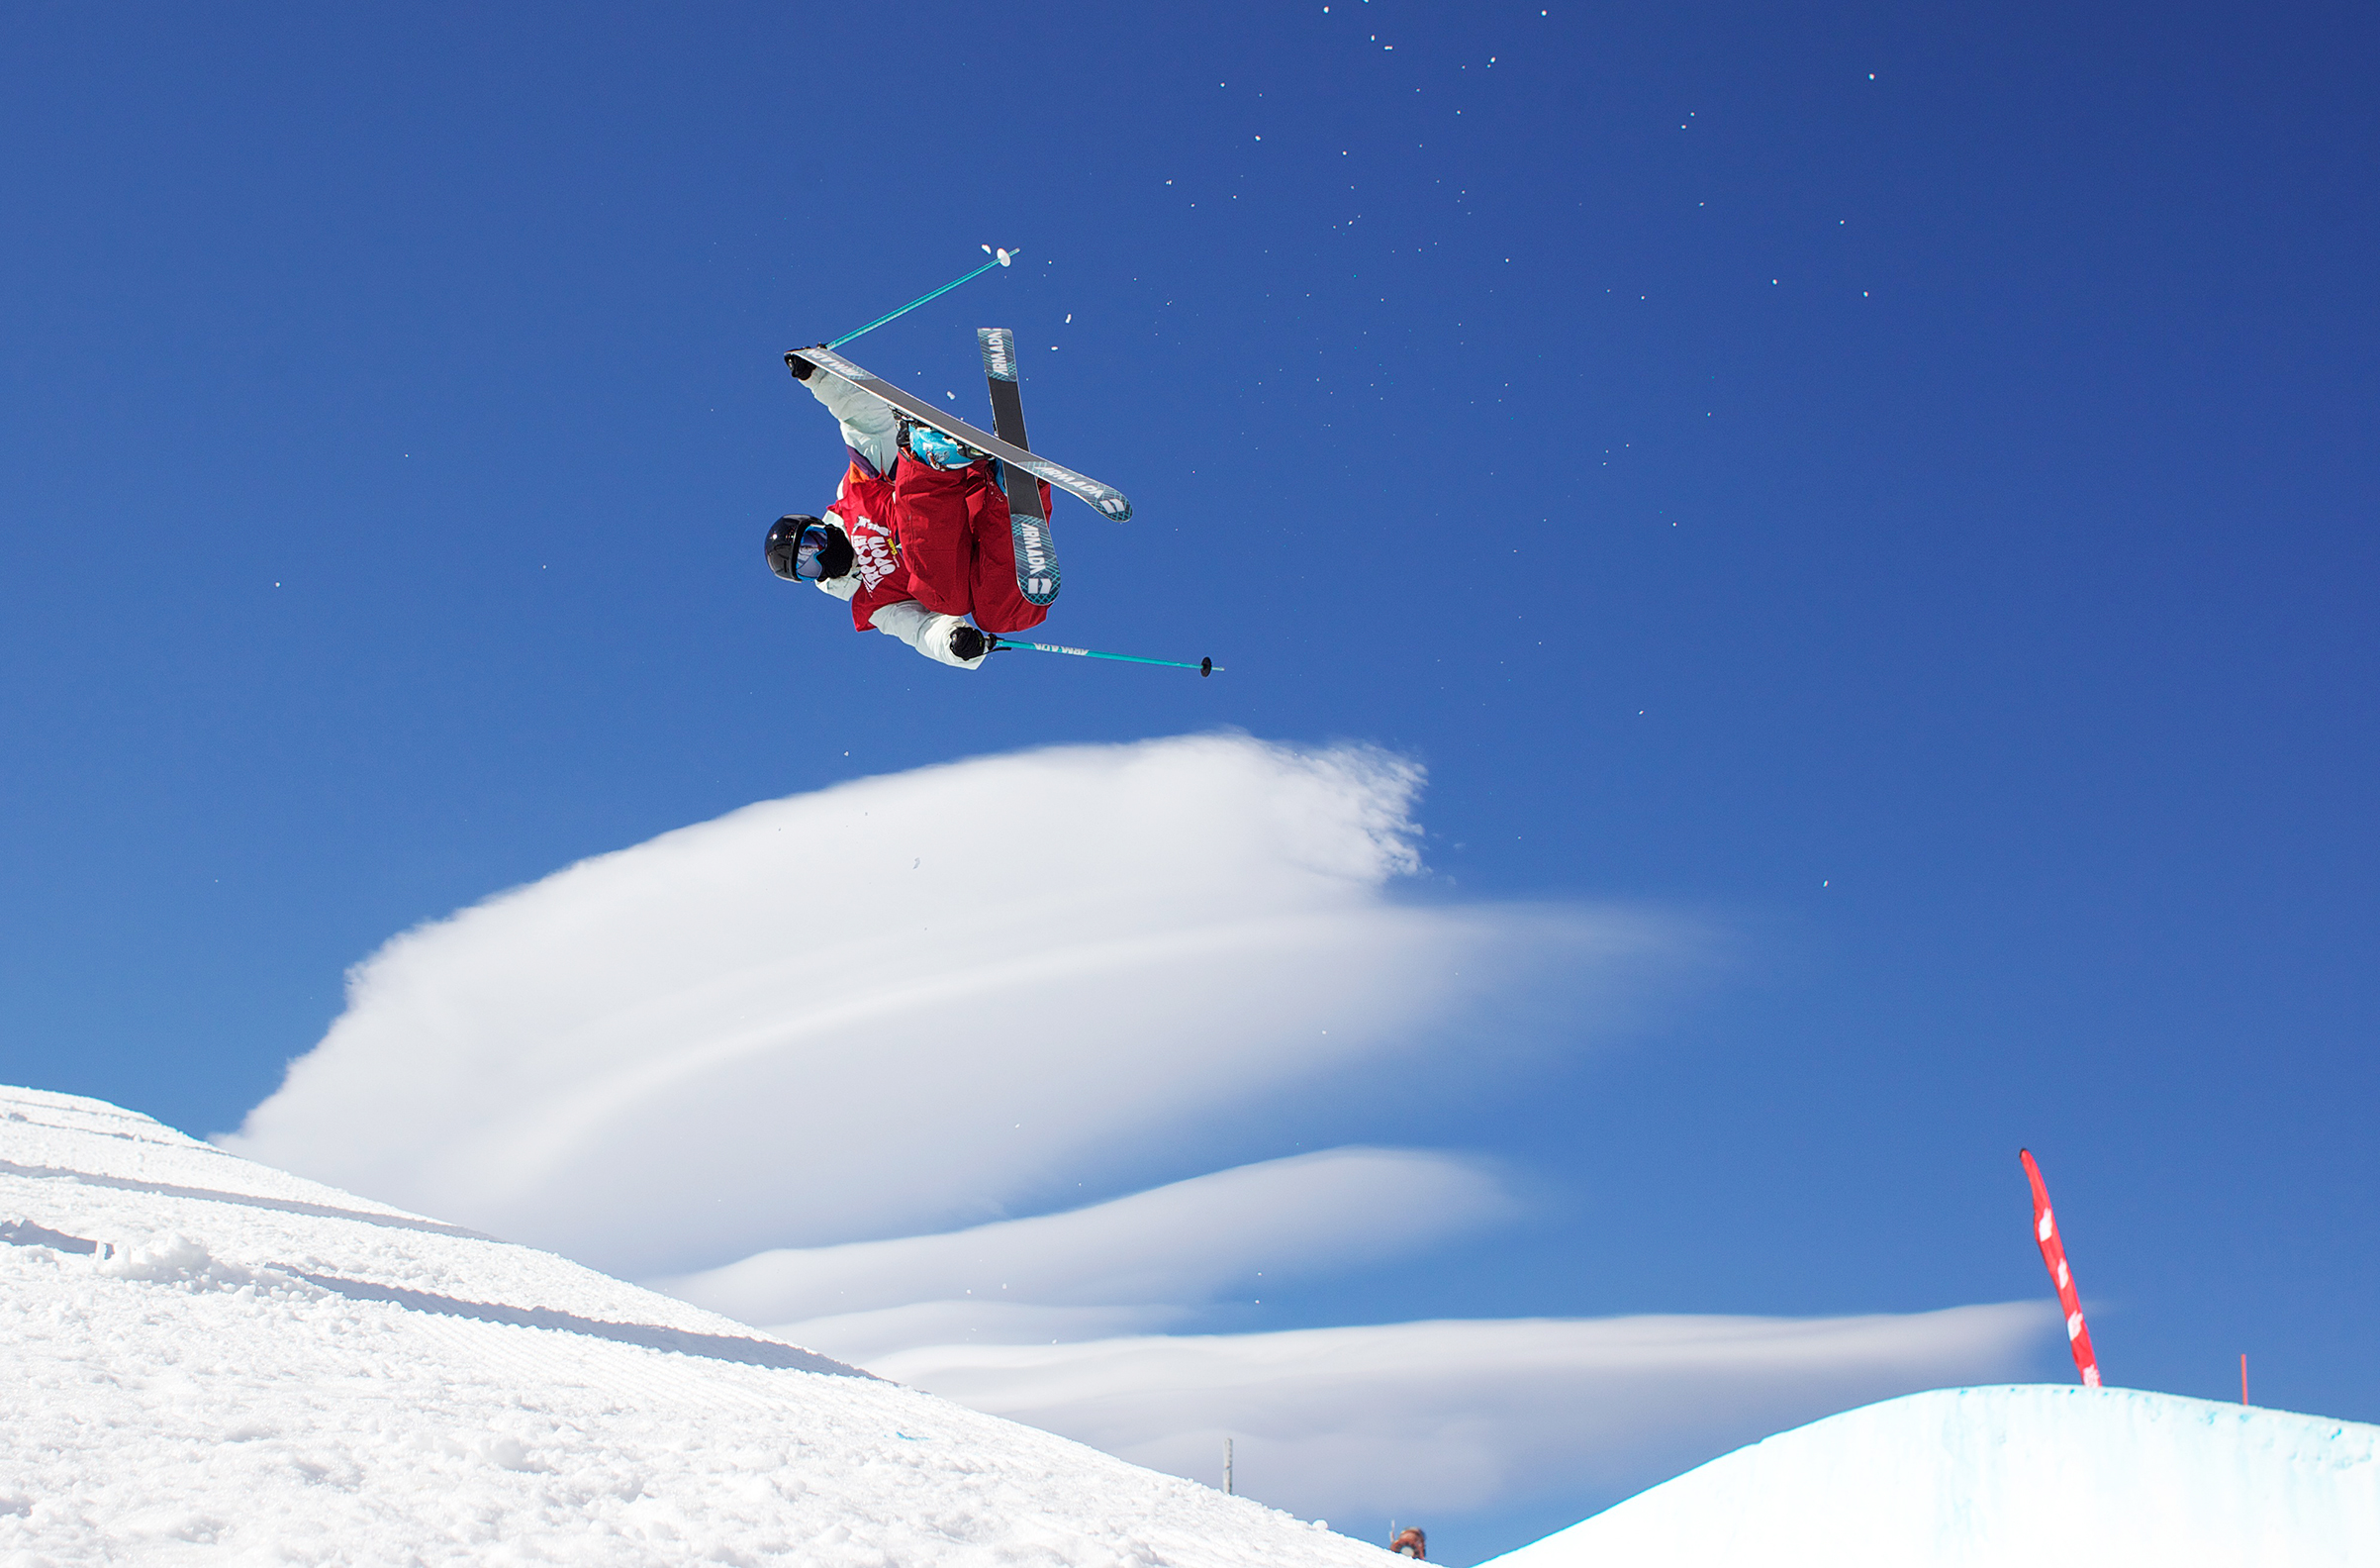 Kenworthy, who took to freestyle skiing as a kid in Colorado, catches air at a halfpipe competition